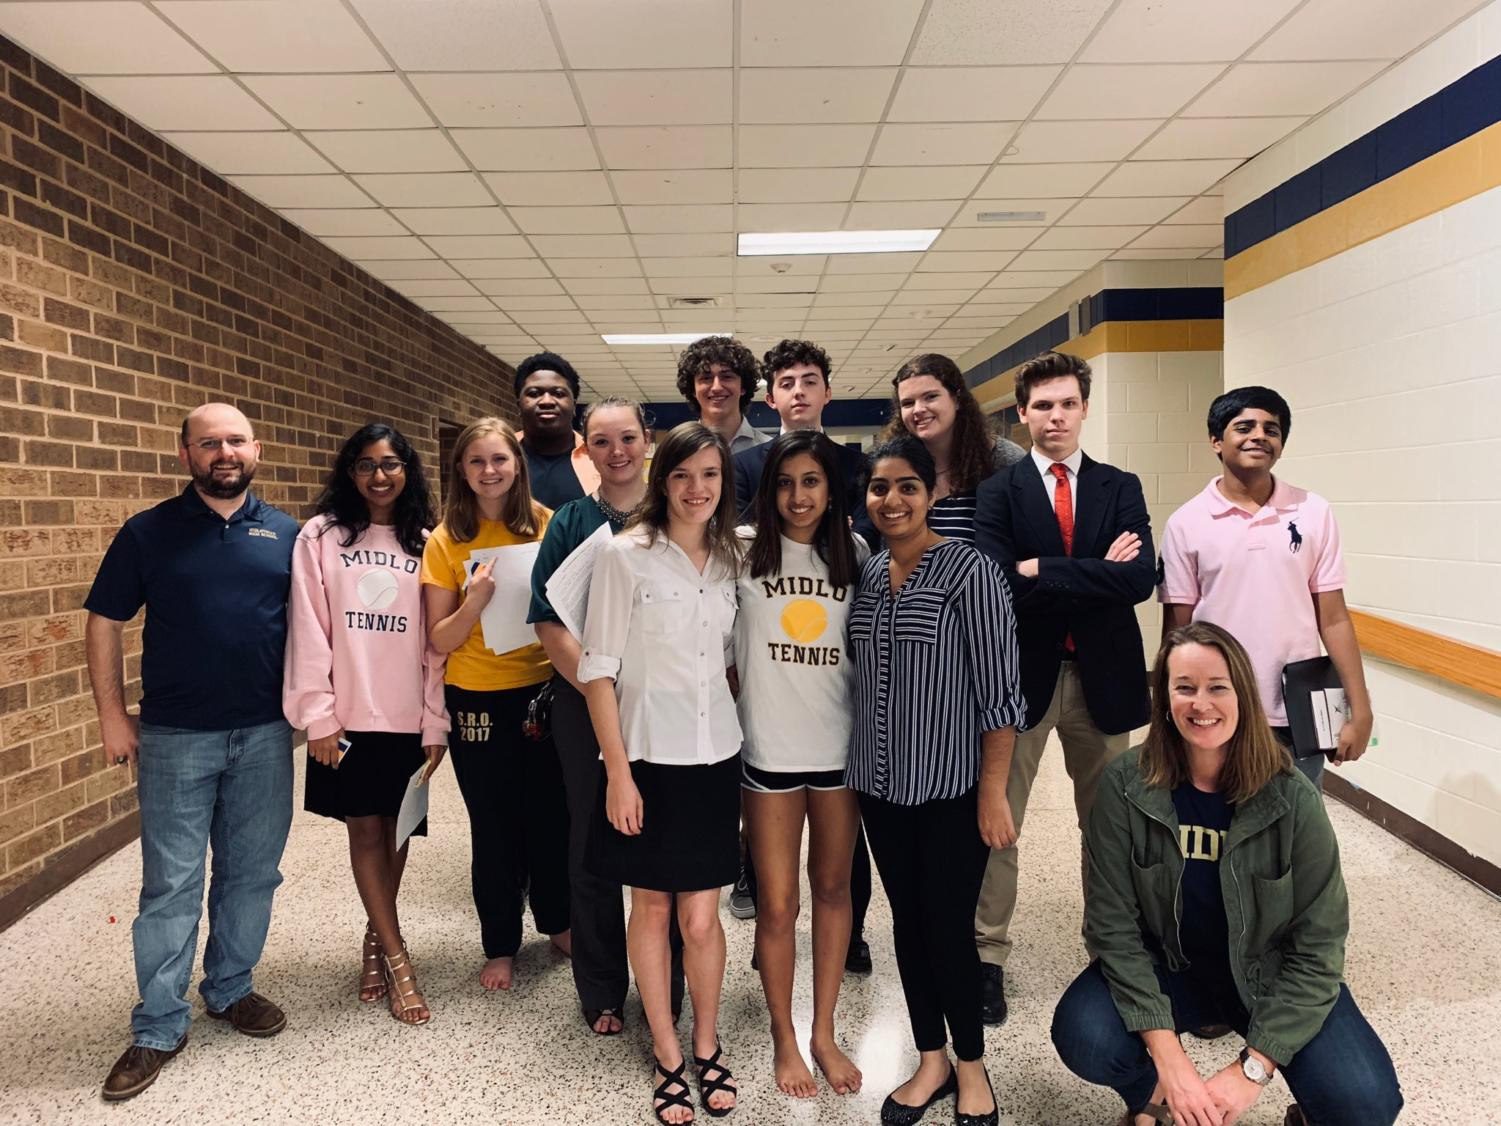 The Forensics & Debate secure multiple wins in their first invitational of the season at Midlothian High School.